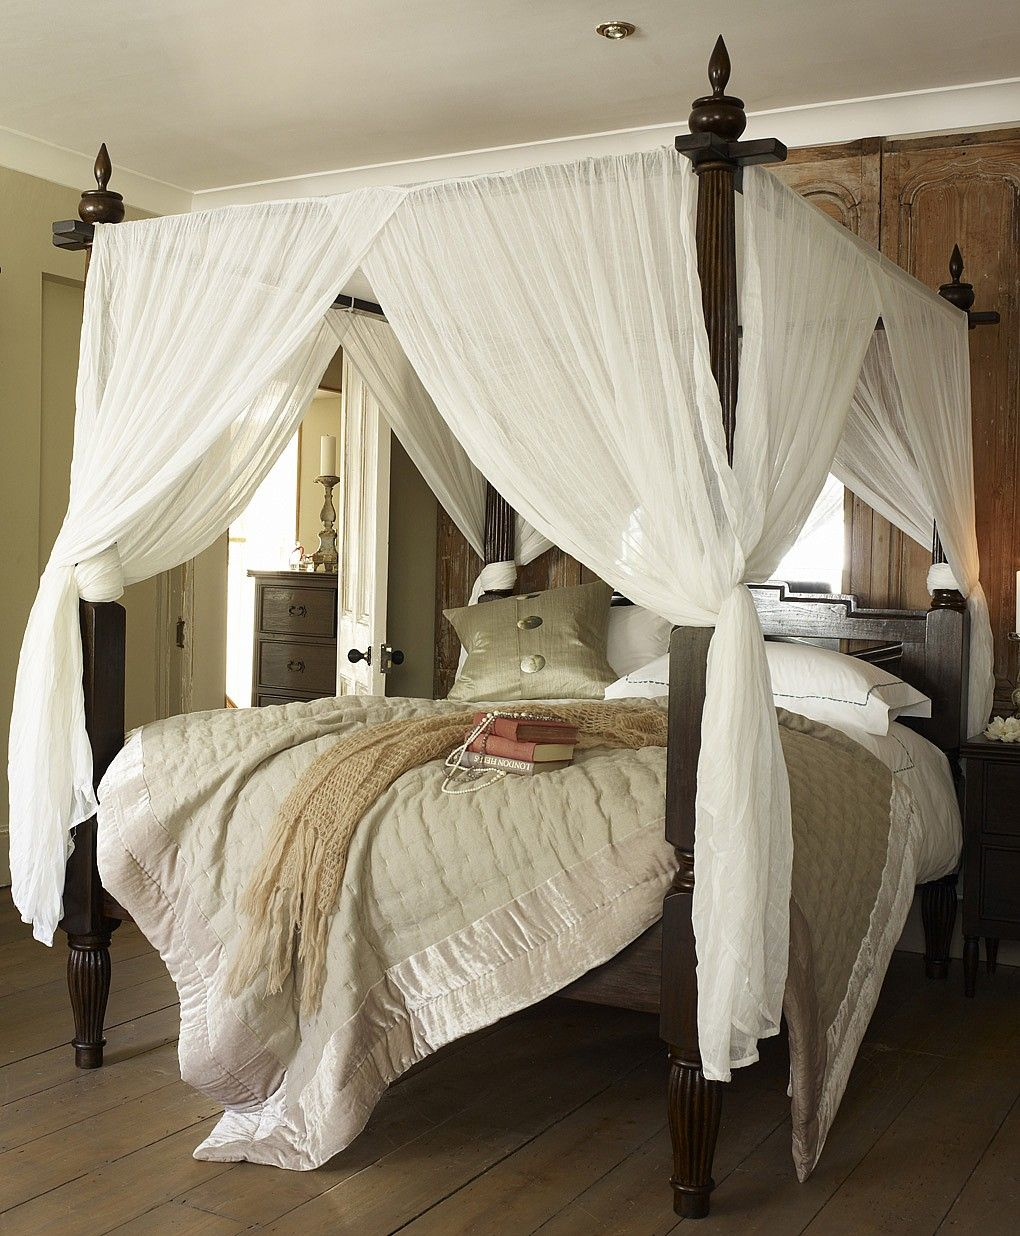 lit baldaquin pour une chambre de d co romantique moderne canopy canopy curtains and romantic. Black Bedroom Furniture Sets. Home Design Ideas